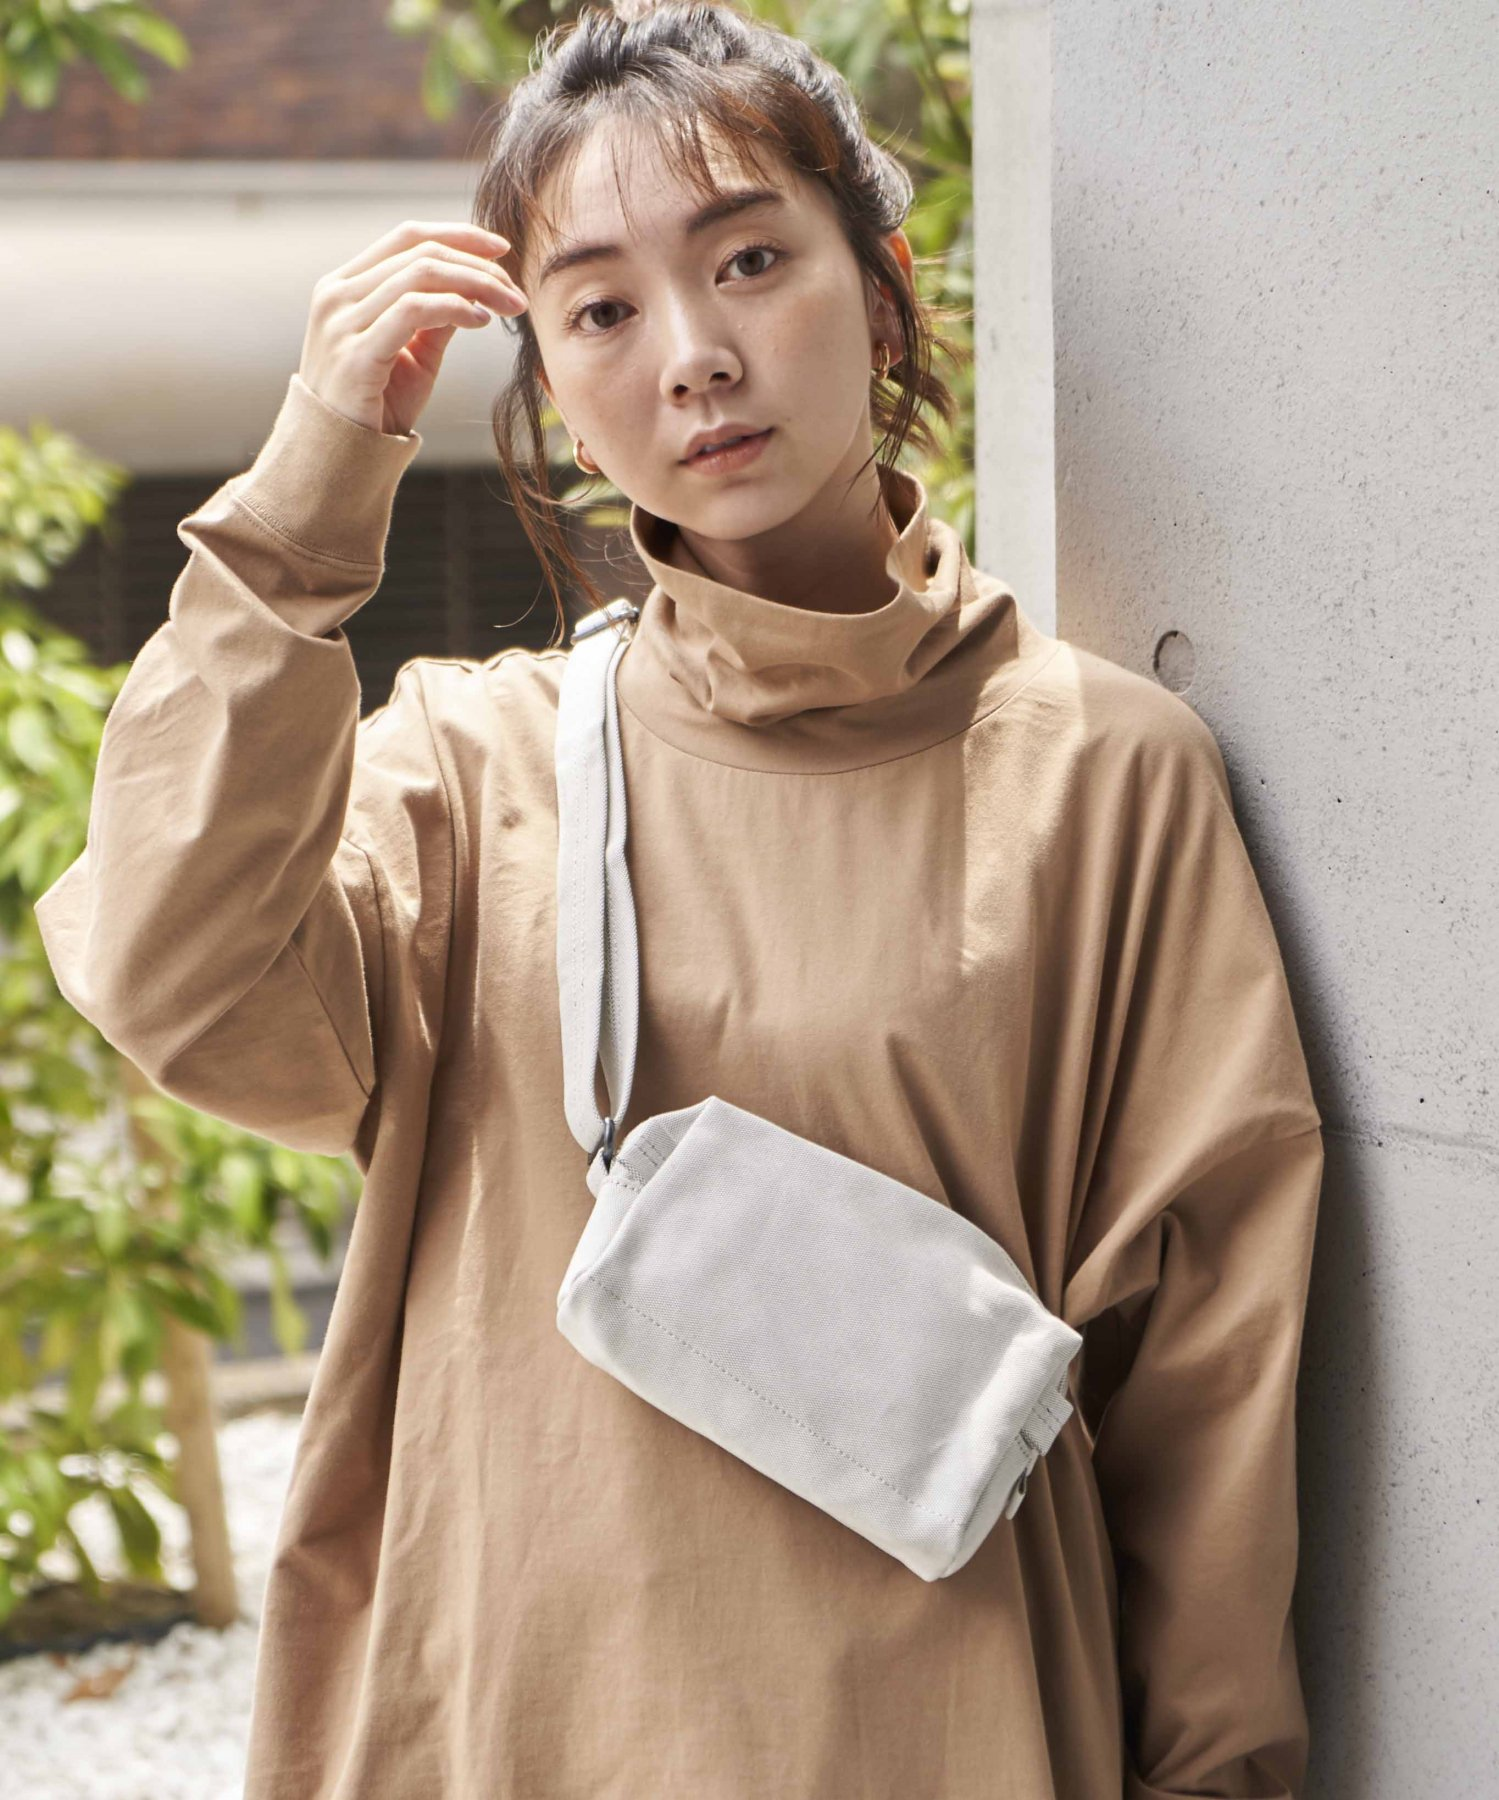 <img class='new_mark_img1' src='https://img.shop-pro.jp/img/new/icons15.gif' style='border:none;display:inline;margin:0px;padding:0px;width:auto;' />【QWSTION】HIP POUCH / BANANATEX® L.GRY